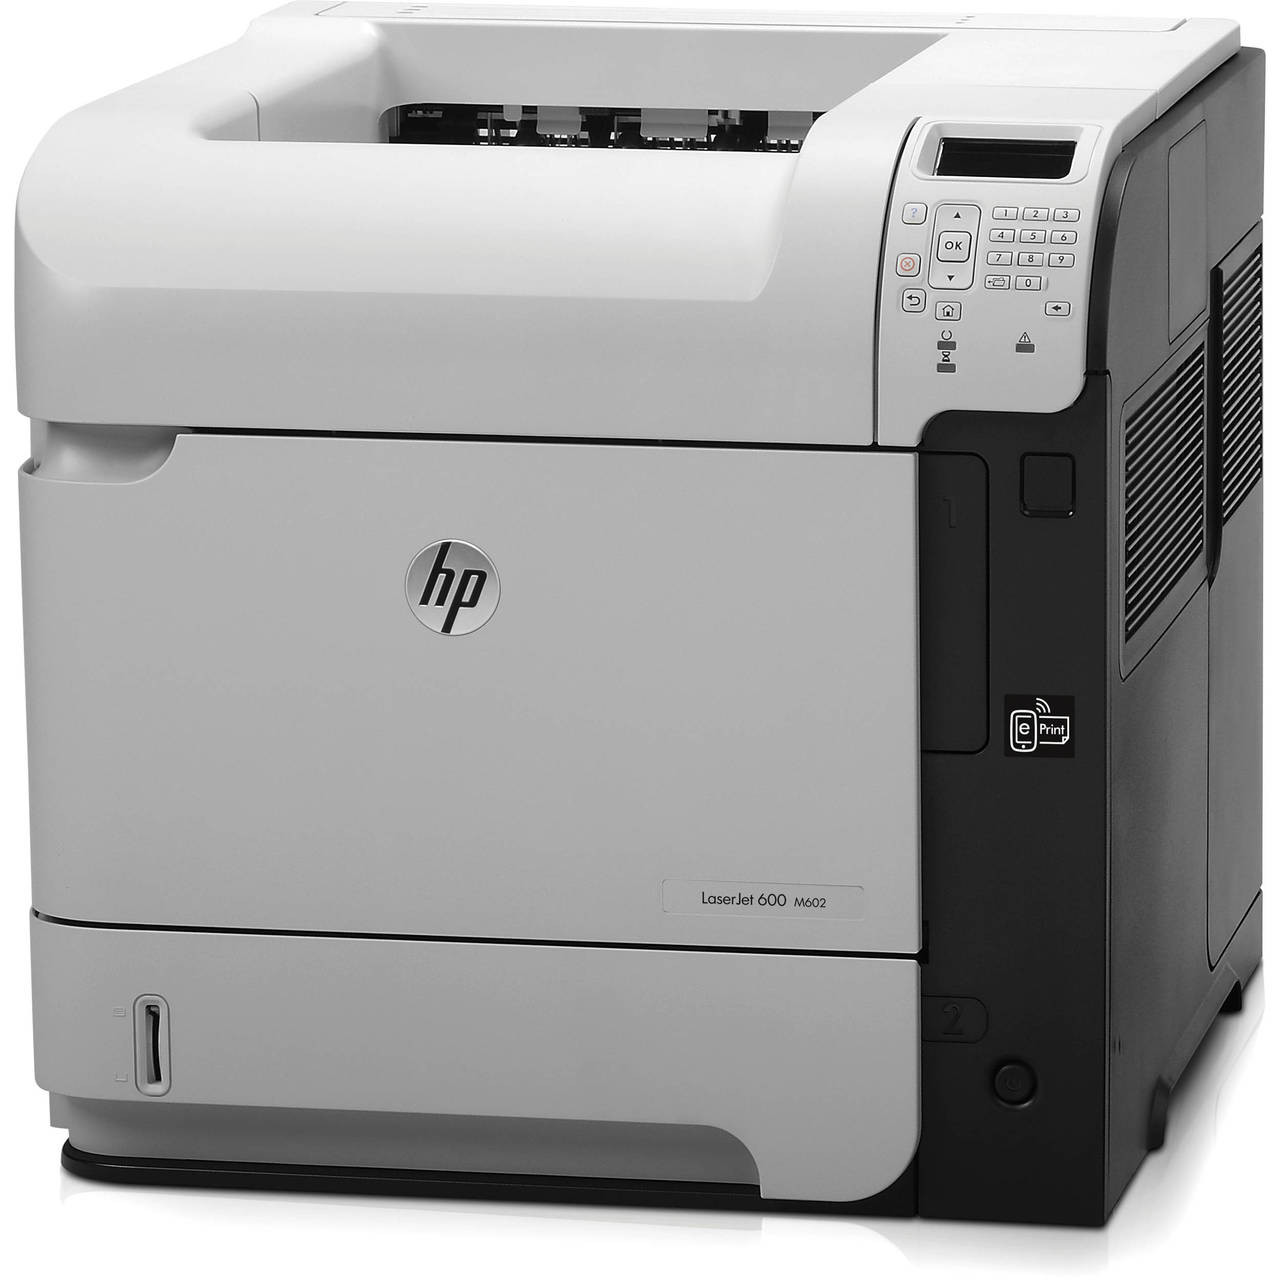 hp items laserjet and oem feeder similar envelope like